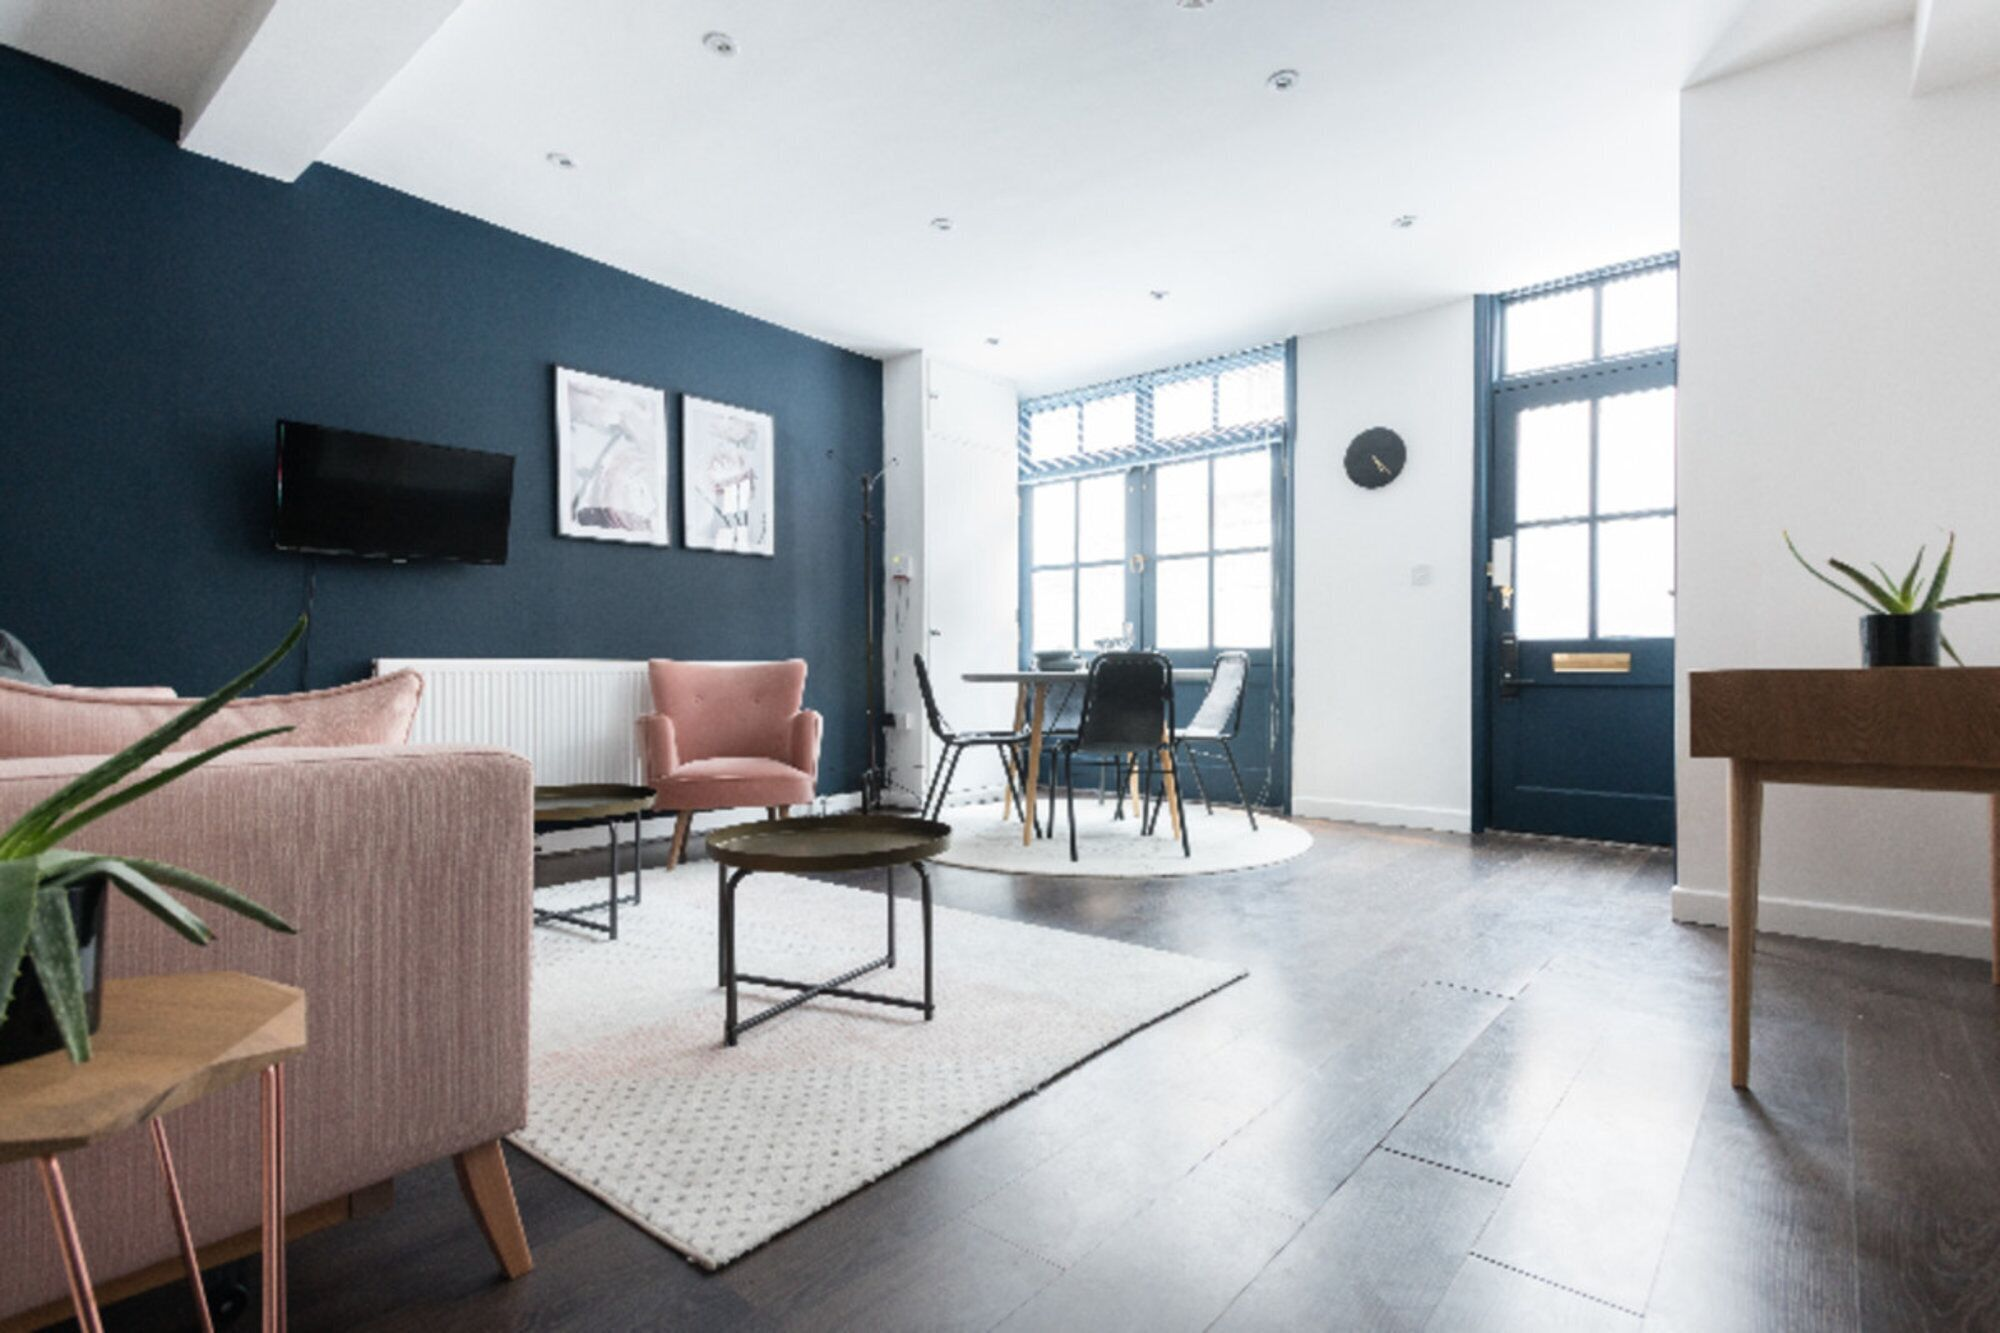 4 Beds - 1 House With Its Own Private Studio Space